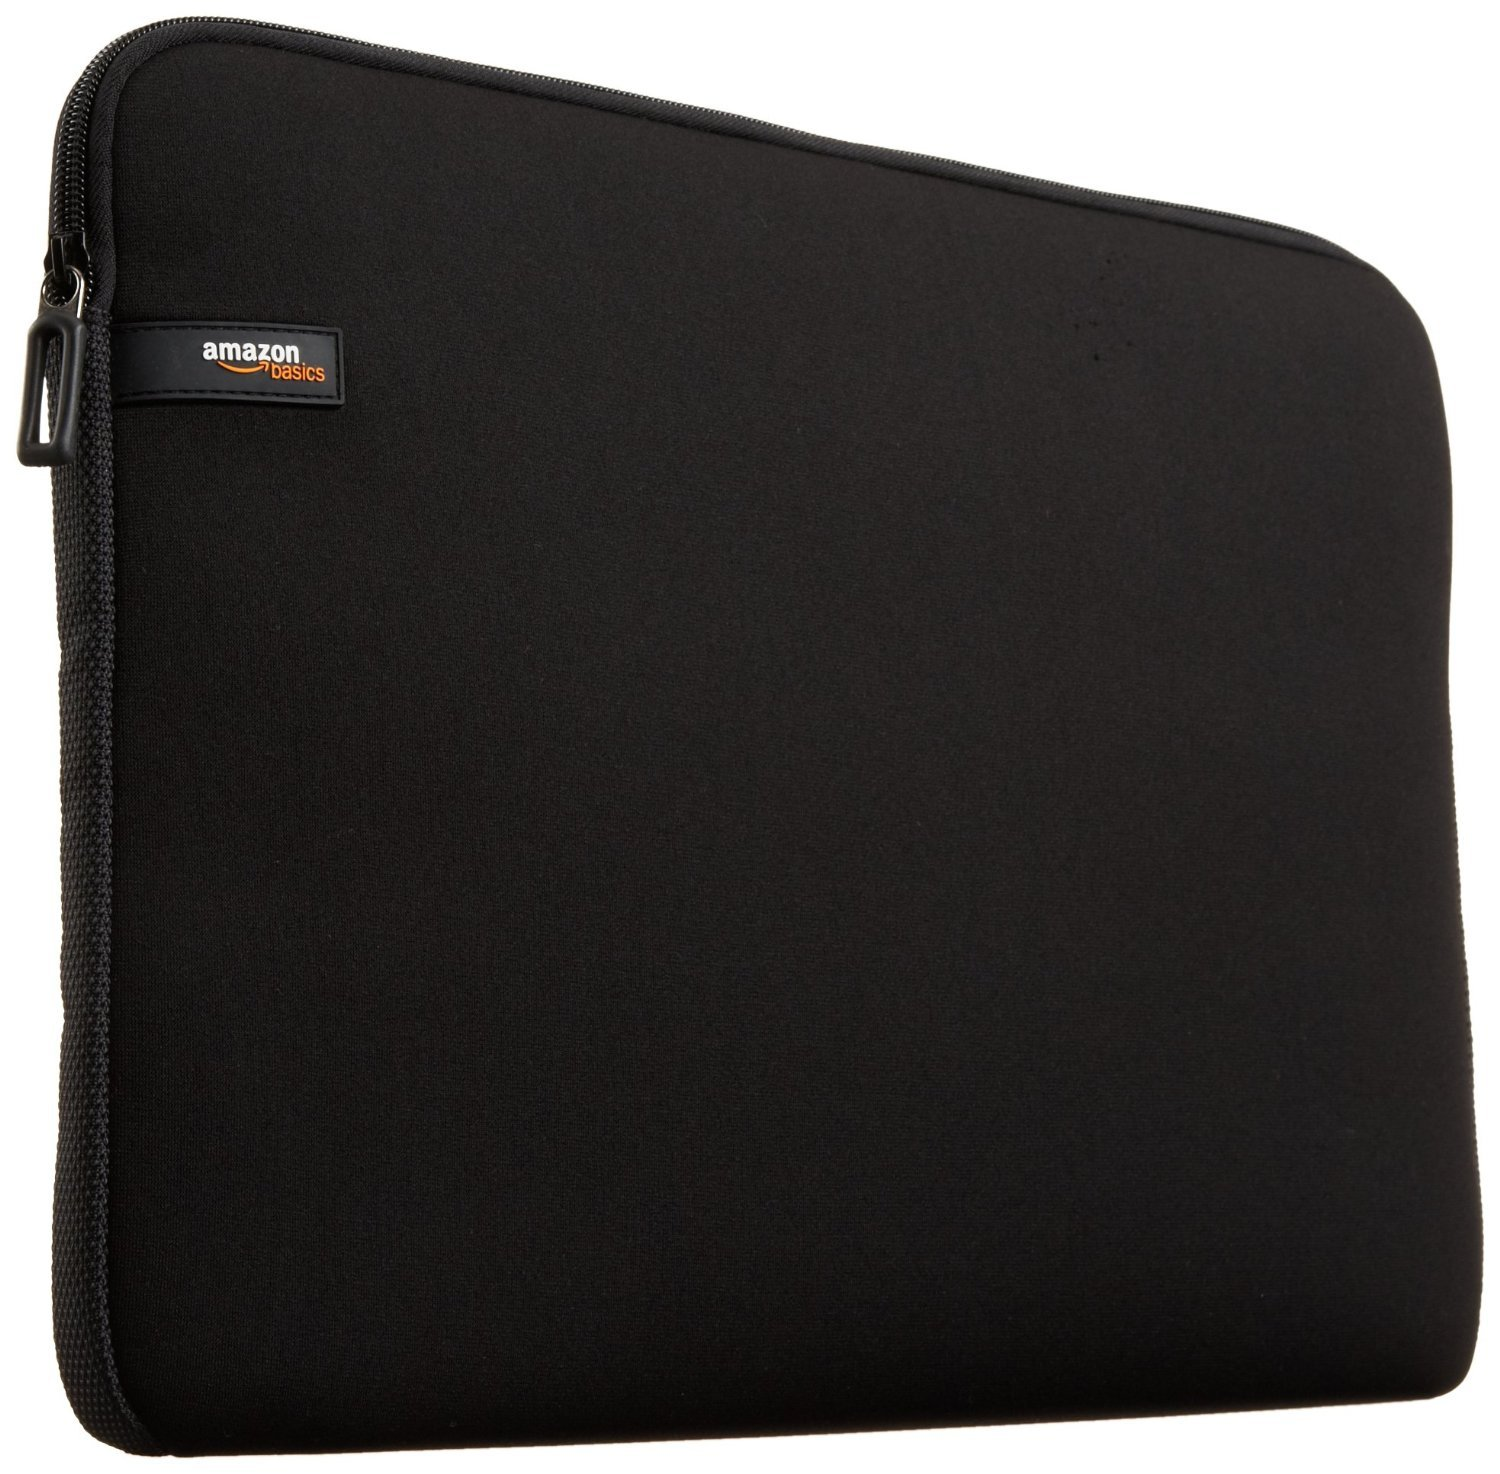 Amazon Basics 8-Inch Tablet Sleeve Case, 5-Pack